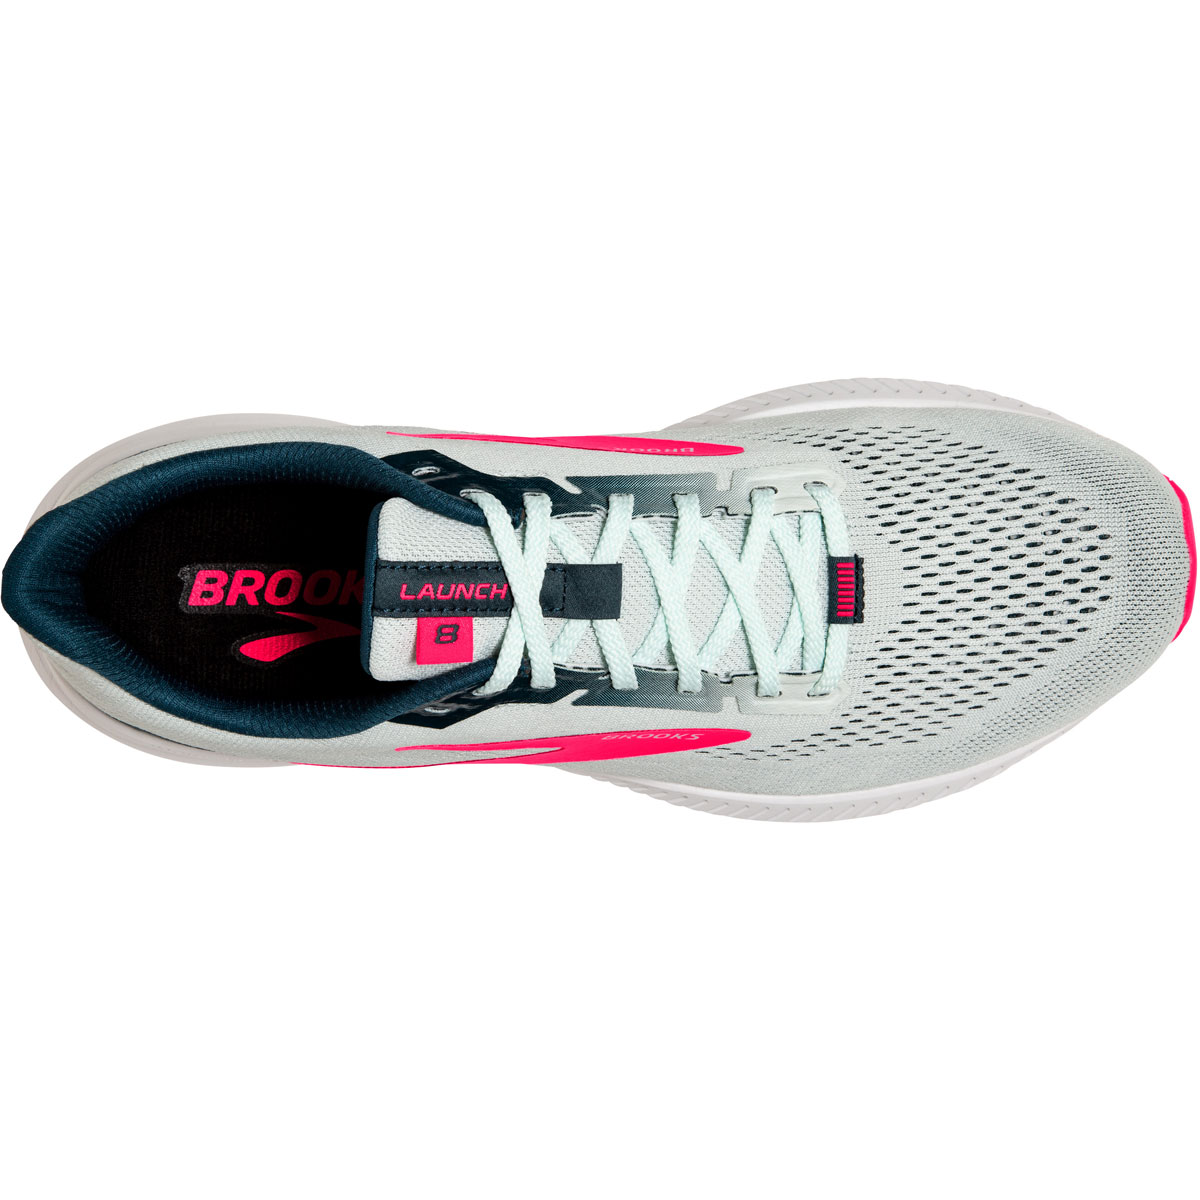 Women's Brooks Launch 8 Running Shoe - Color: Ice Flow/Navy/Pink - Size: 5 - Width: Regular, Ice Flow/Navy/Pink, large, image 4